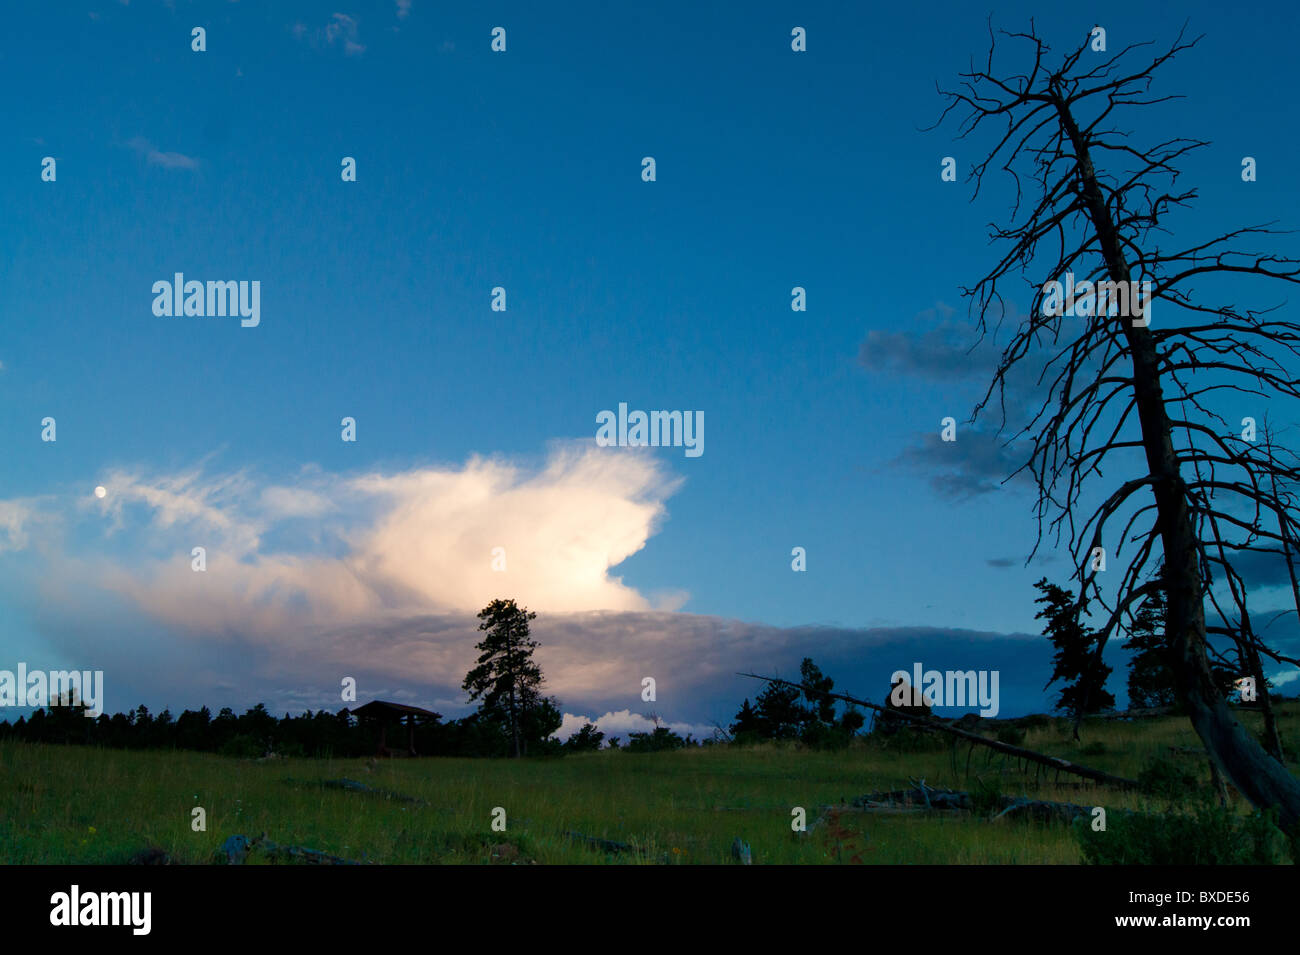 Dramatic scene of landscape in the evening at the mountains - Stock Image